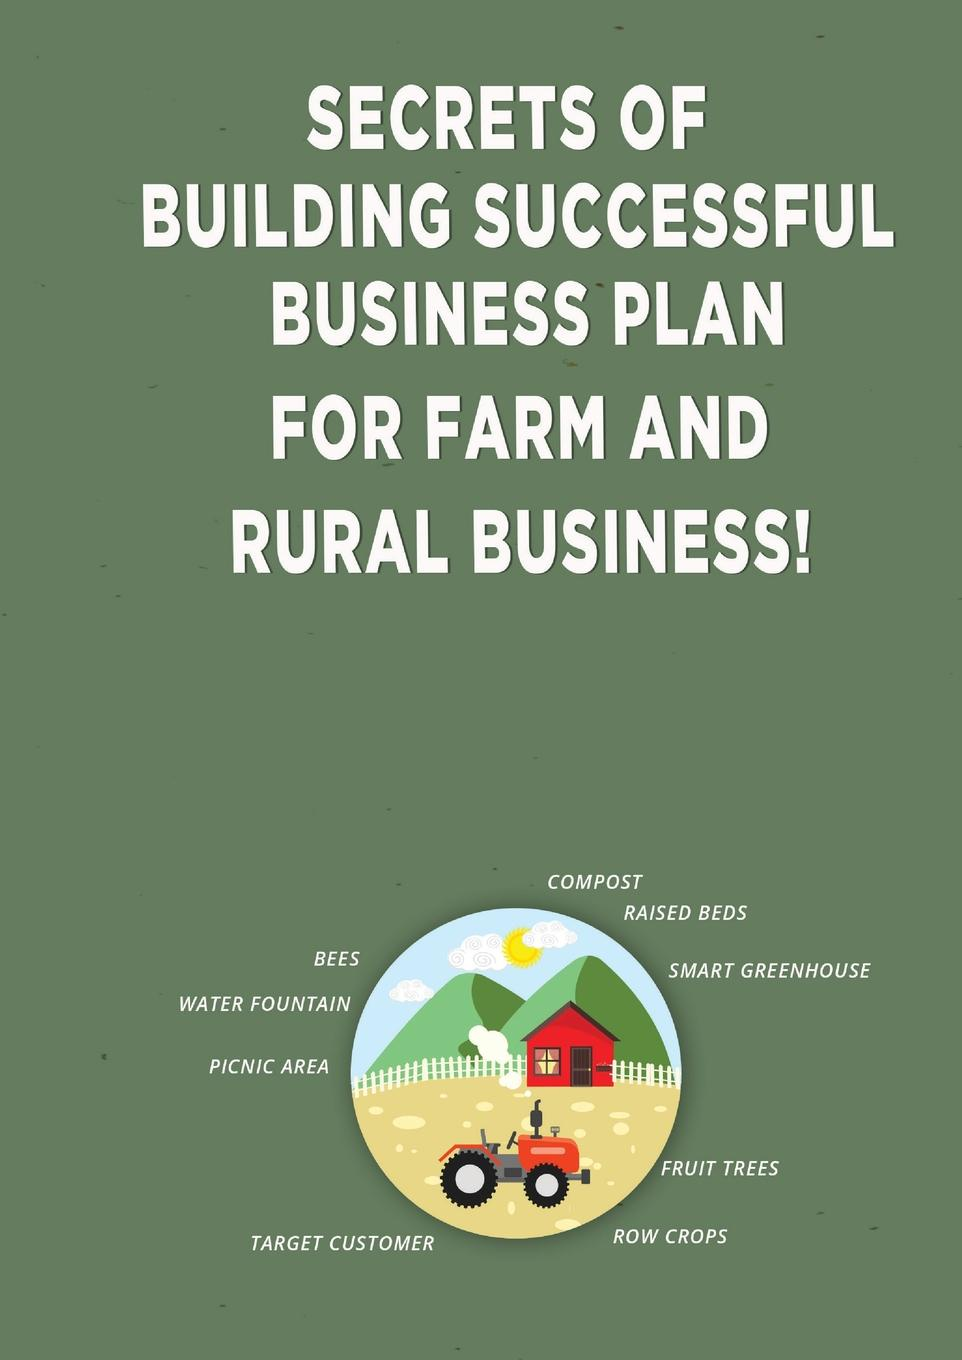 Andrei Besedin Secrets of Building Successful Business Plan for Farm and Rural Business! charles leichtweis the power of respect in business enabling your teams to achieve sustainable profitable growth